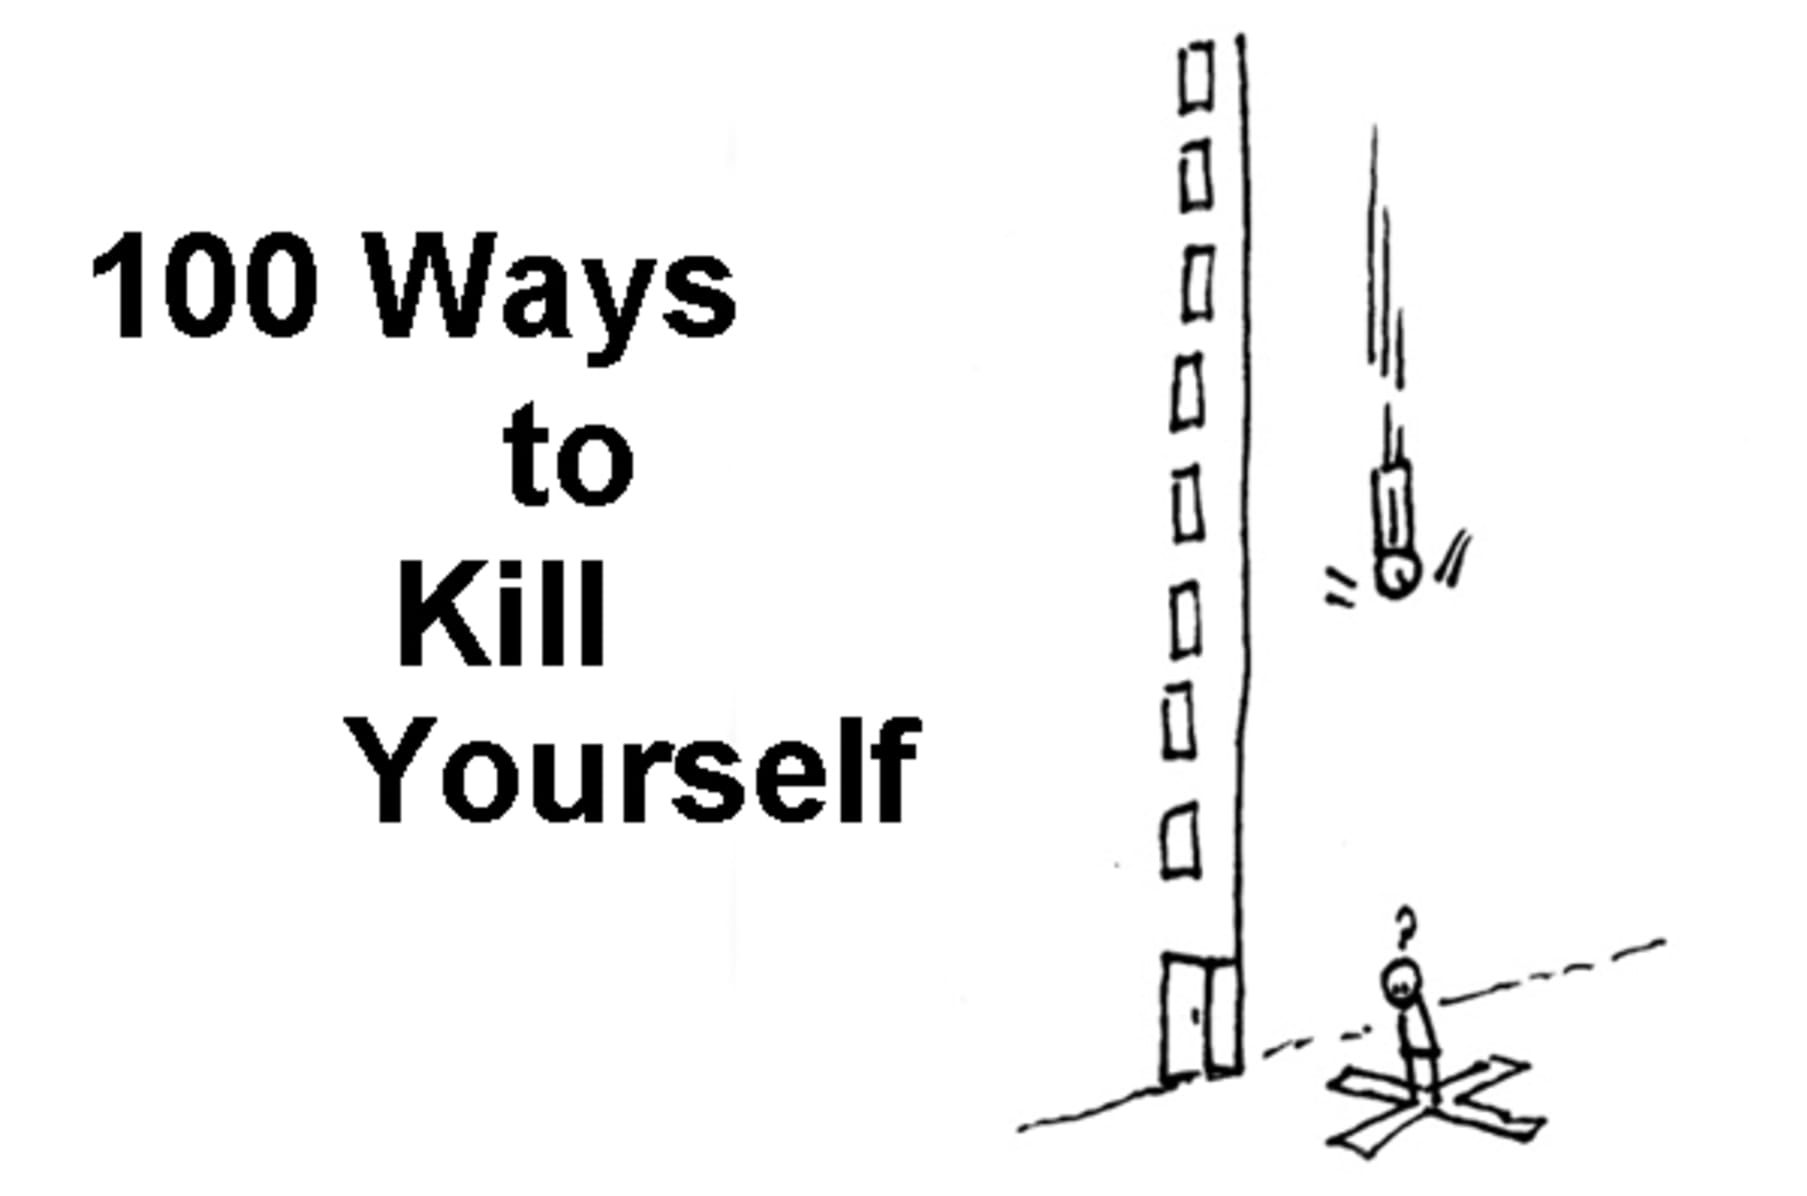 When to kill yourself